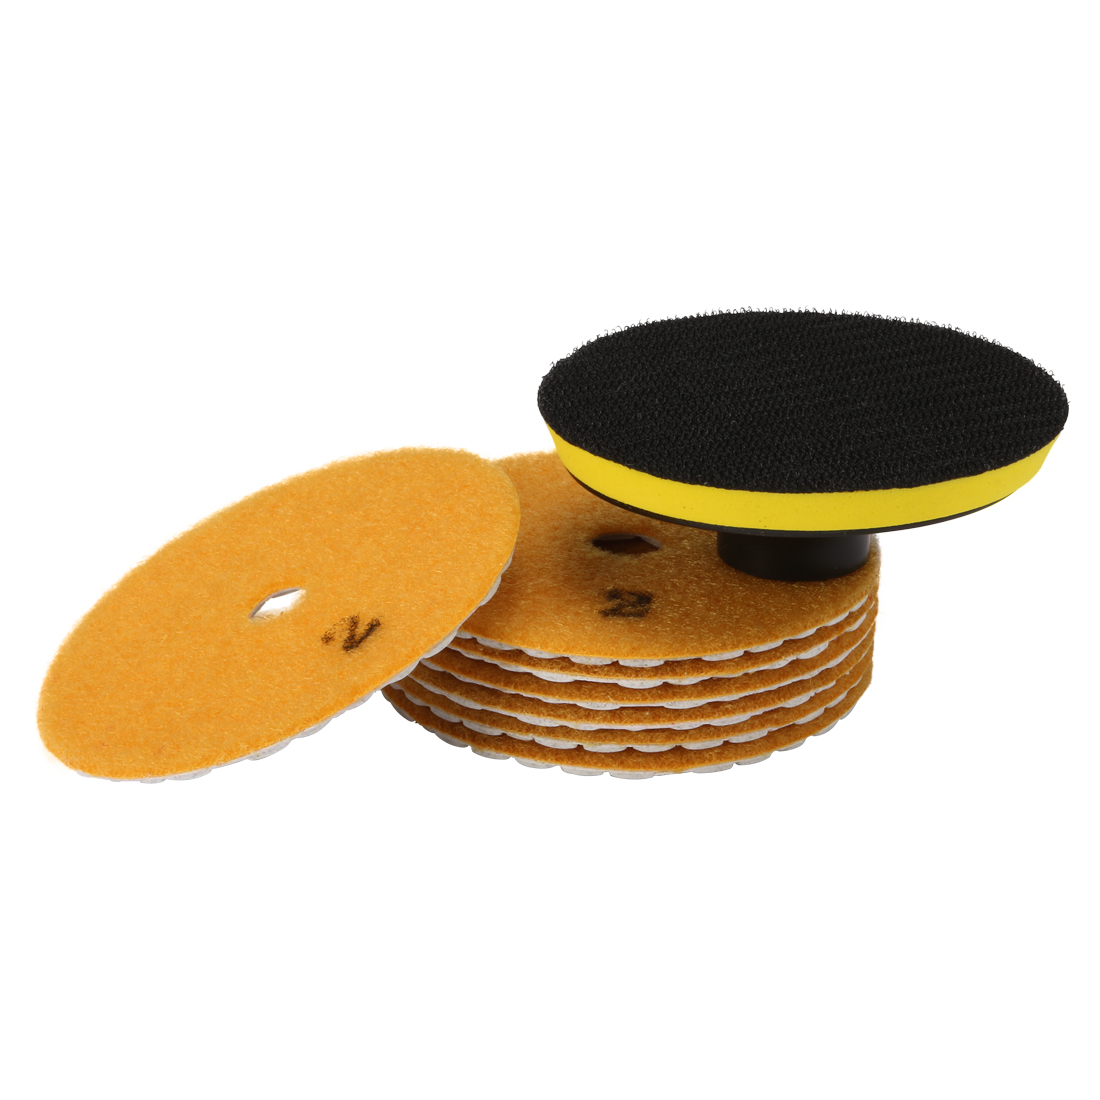 4-inch Diamond Dry Polishing Pad Grit 300 7PCS for Sanding Marble Granite Stone